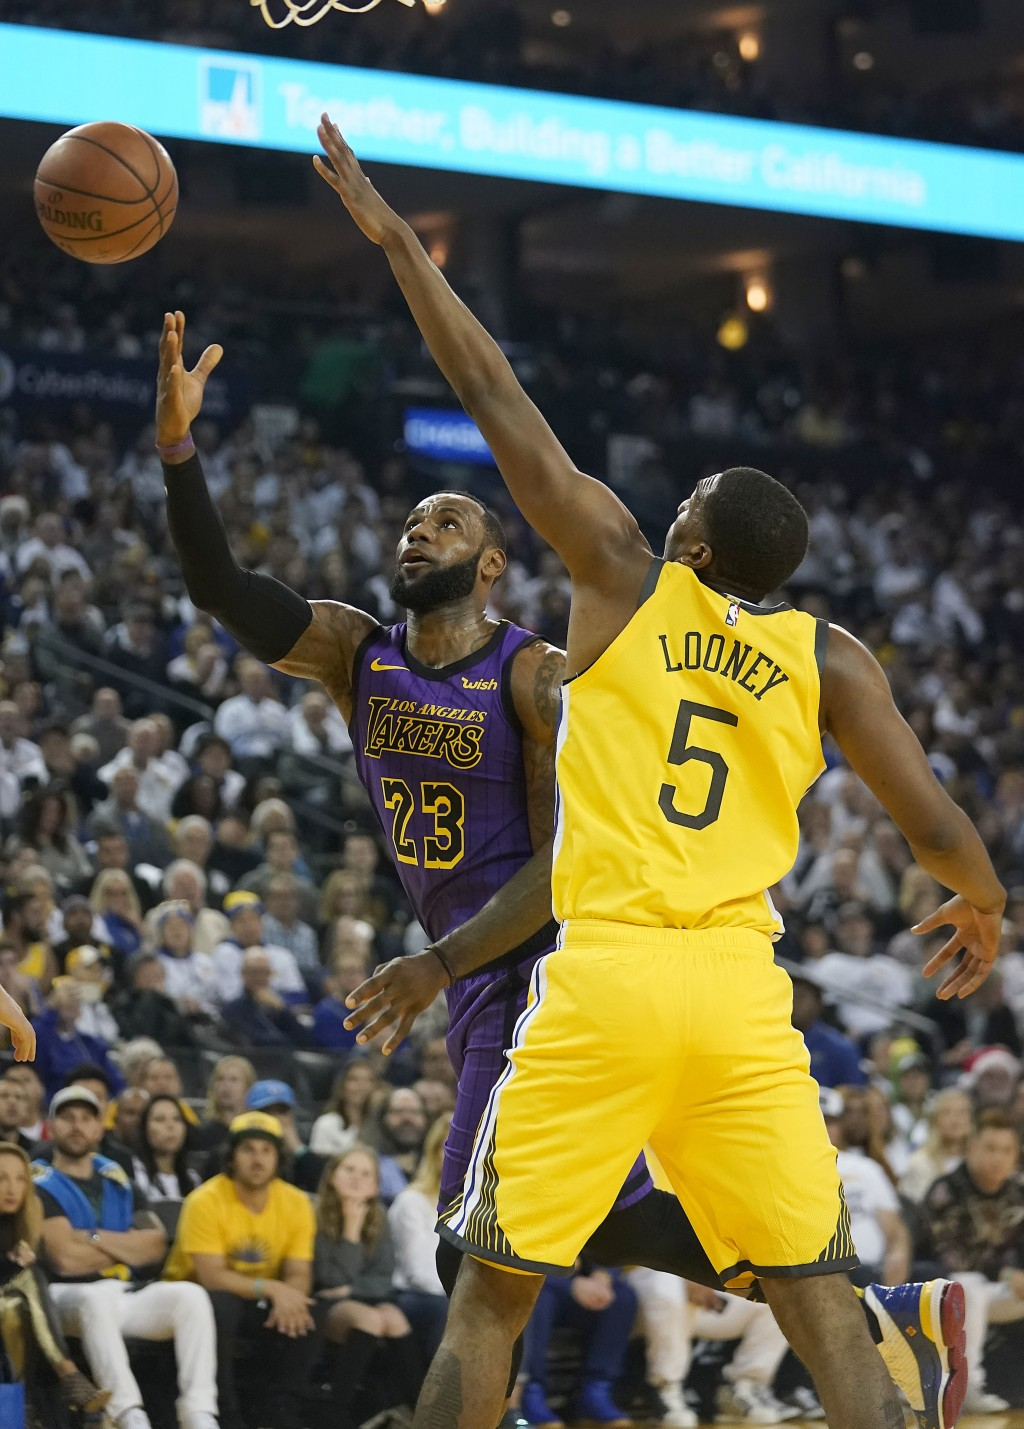 Los Angeles Lakers forward LeBron James (23) drives to the basket against Golden State Warriors forward Kevon Looney (5) during the first half of an N